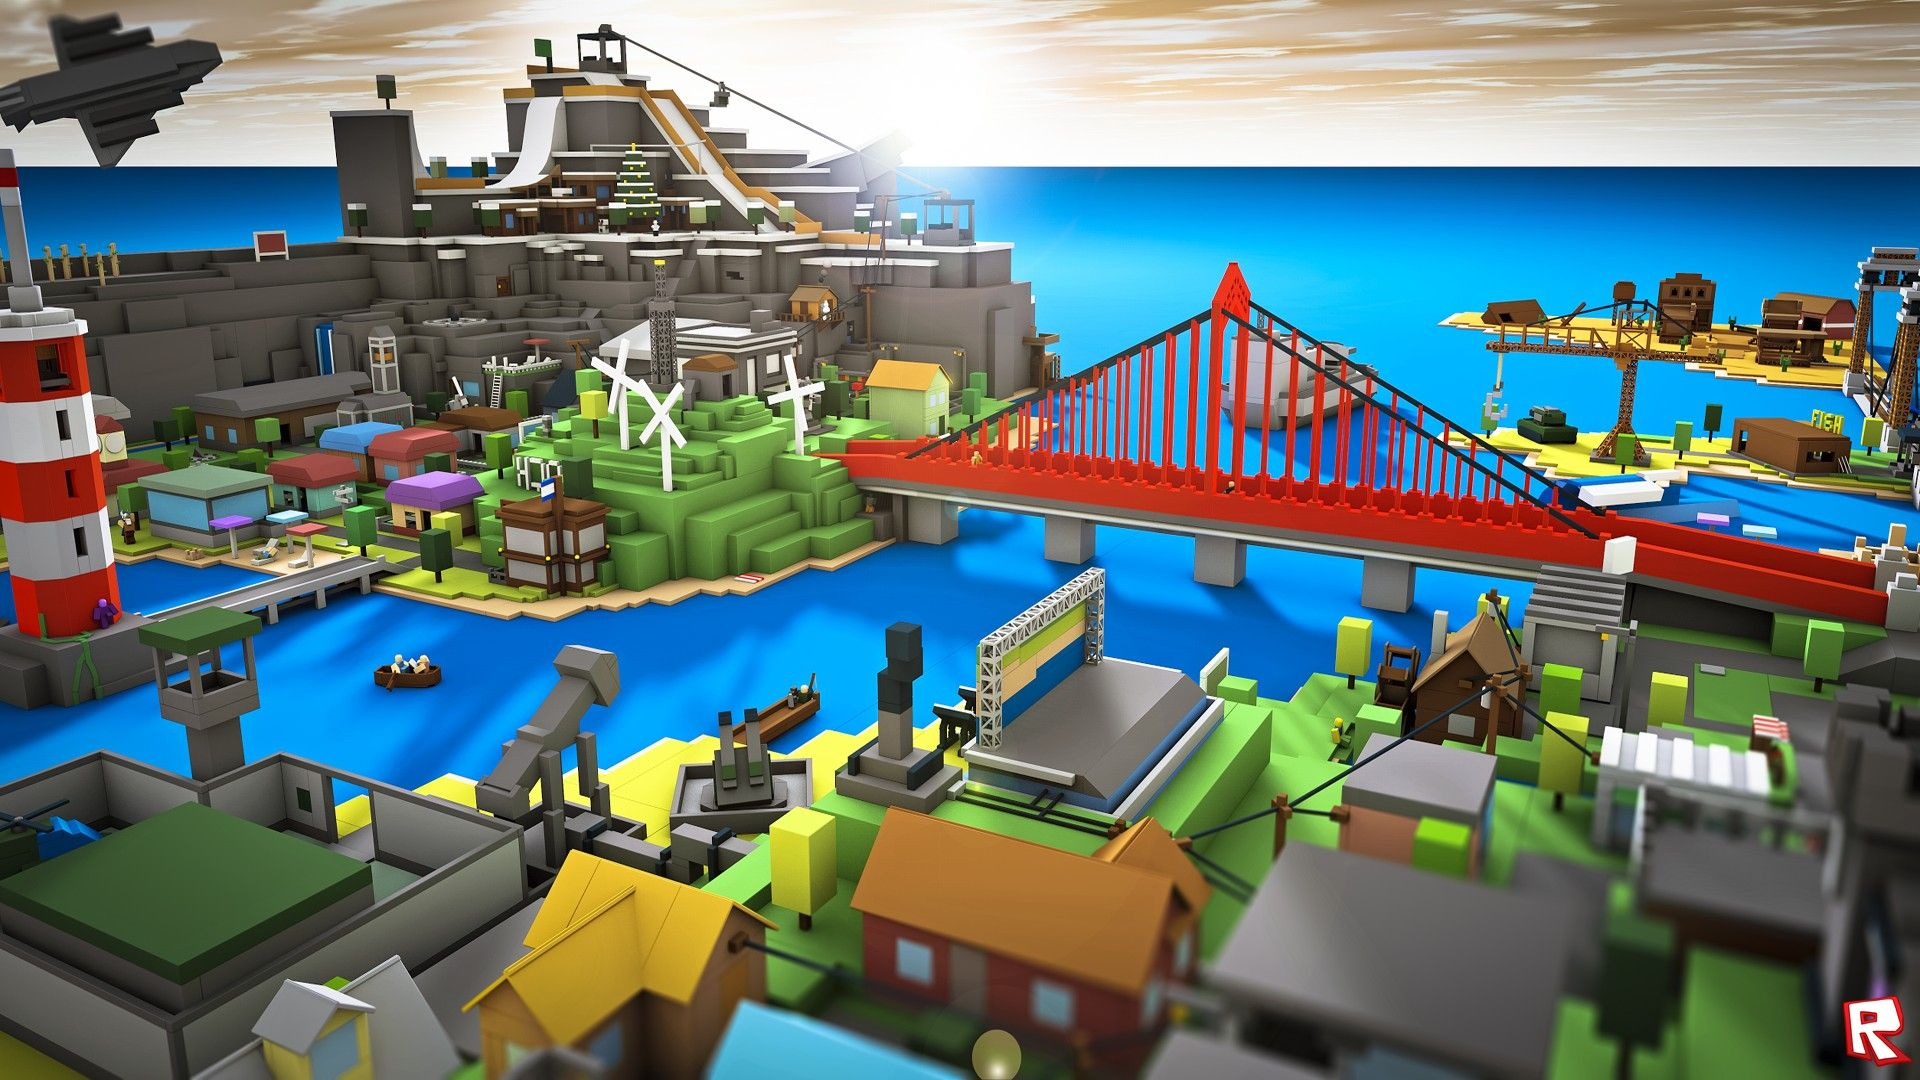 Lovely Roblox Background Hd Roblox Cheat Online Roblox Online